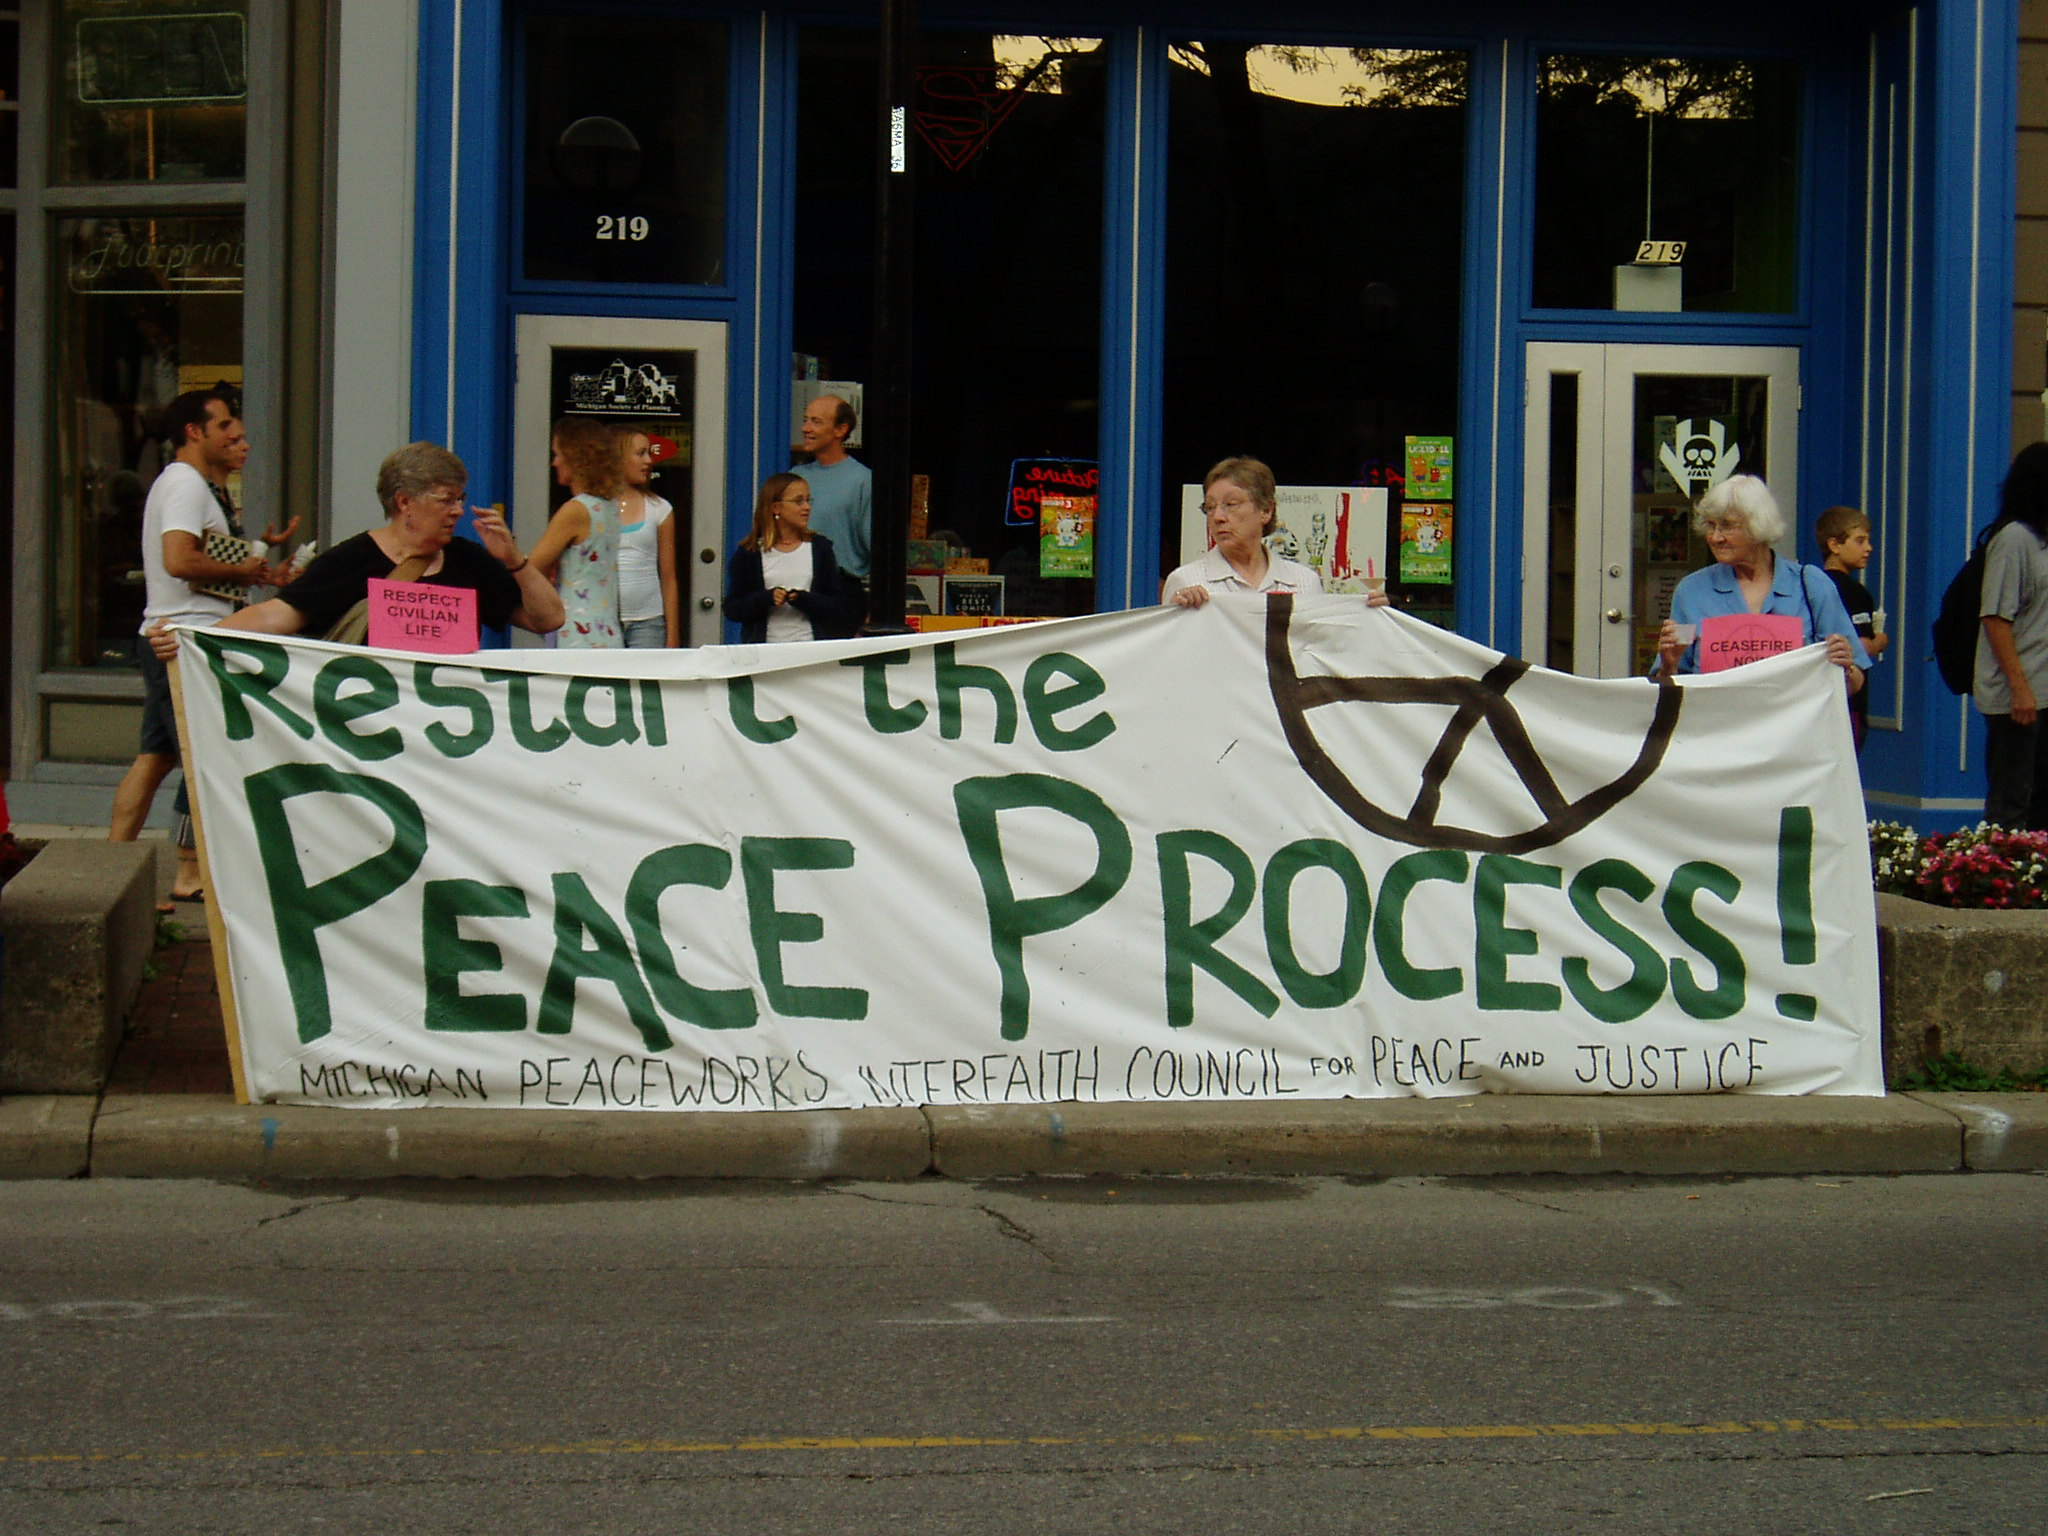 Interfaith Council for Peace and Justice: Middle East Peace Vigil, 2006 image